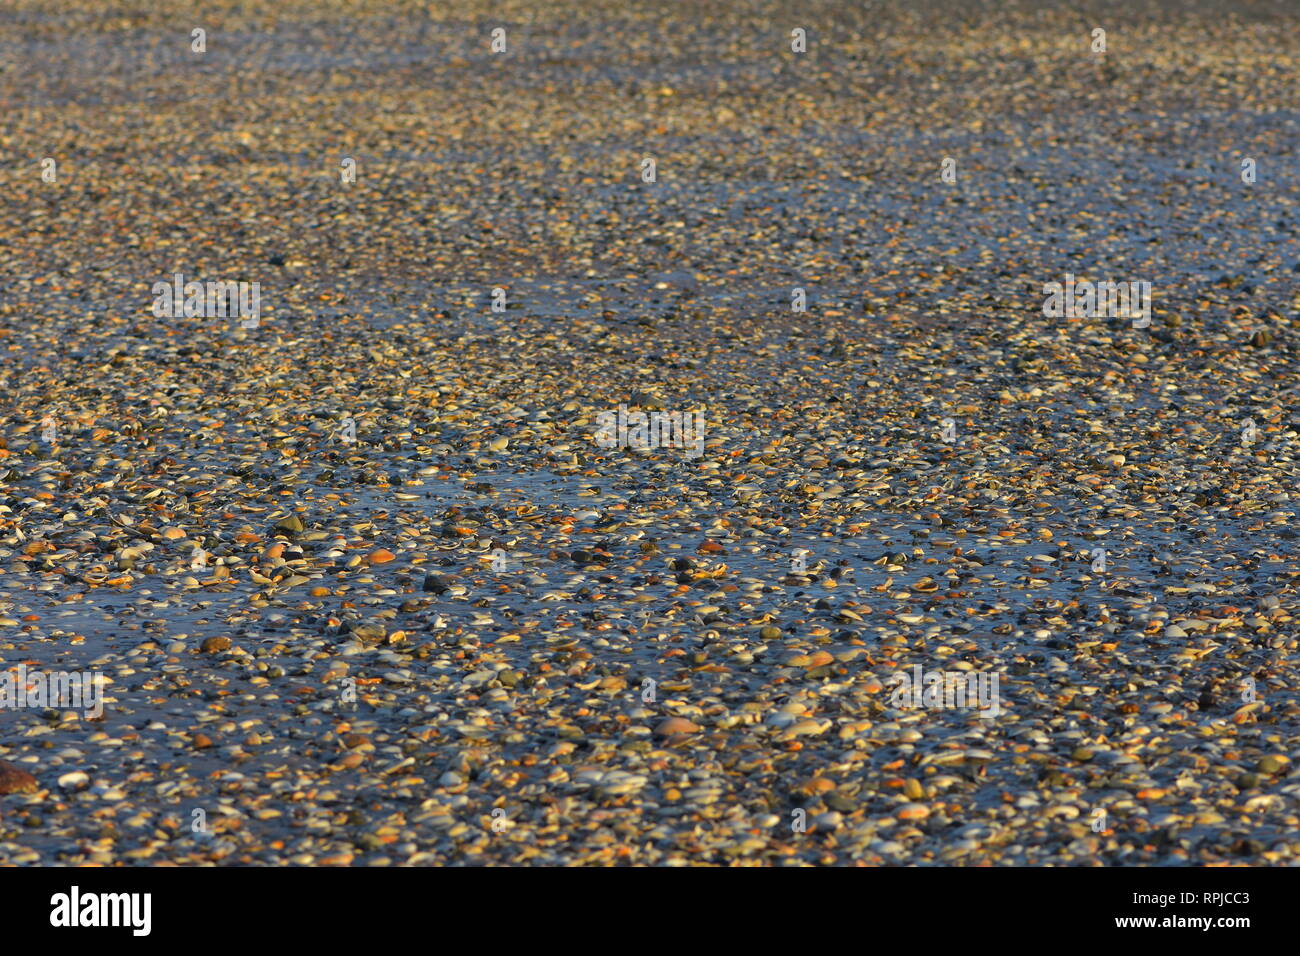 Flat oceanic beach at low tide showing mixture of fine dark sand and various colorful bivalve shells. - Stock Image